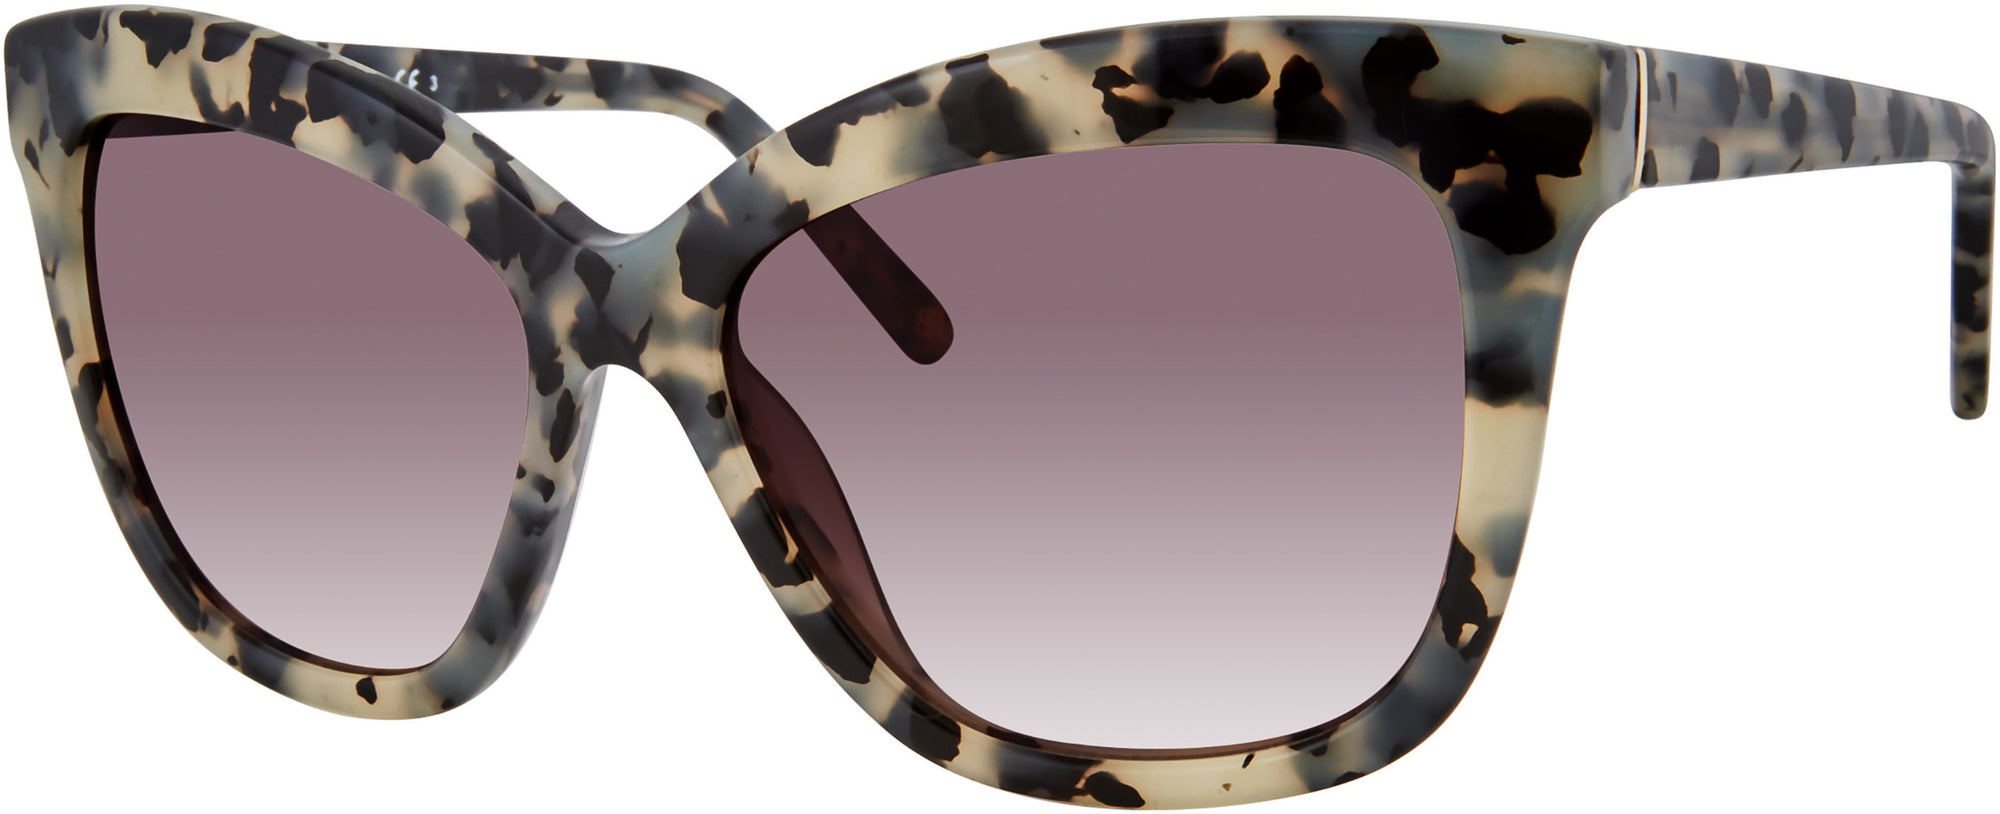 Banana Republic Daria/S Cat Eye/butterfly Sunglasses 0TCB-0TCB  White Black Spotted (3X Pink Gradient)